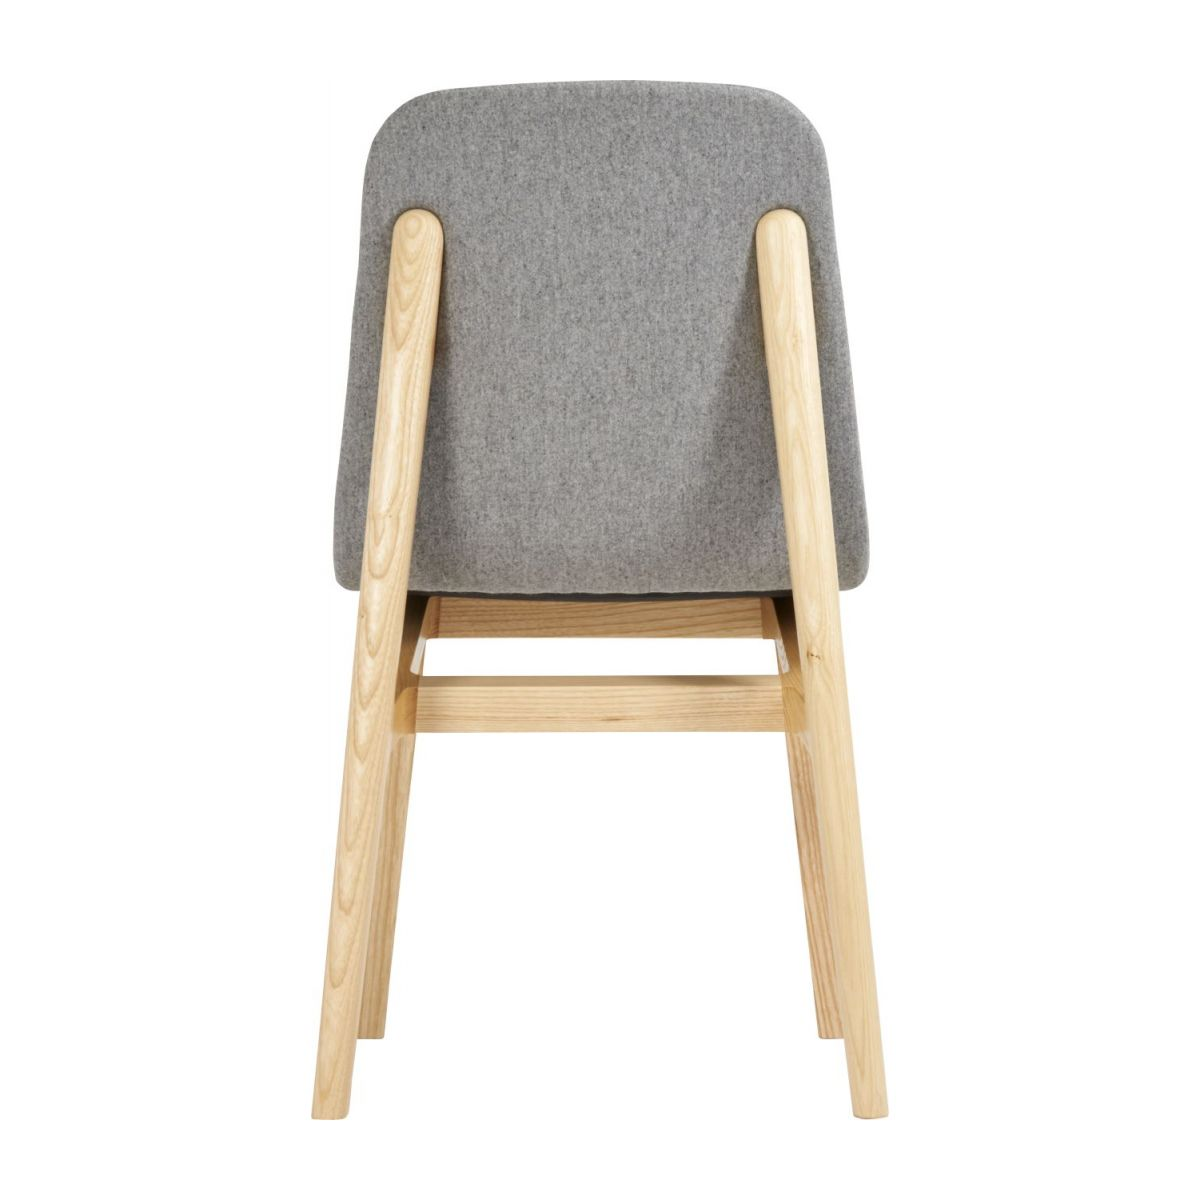 Chair made of ash tree and felt, grey n°5